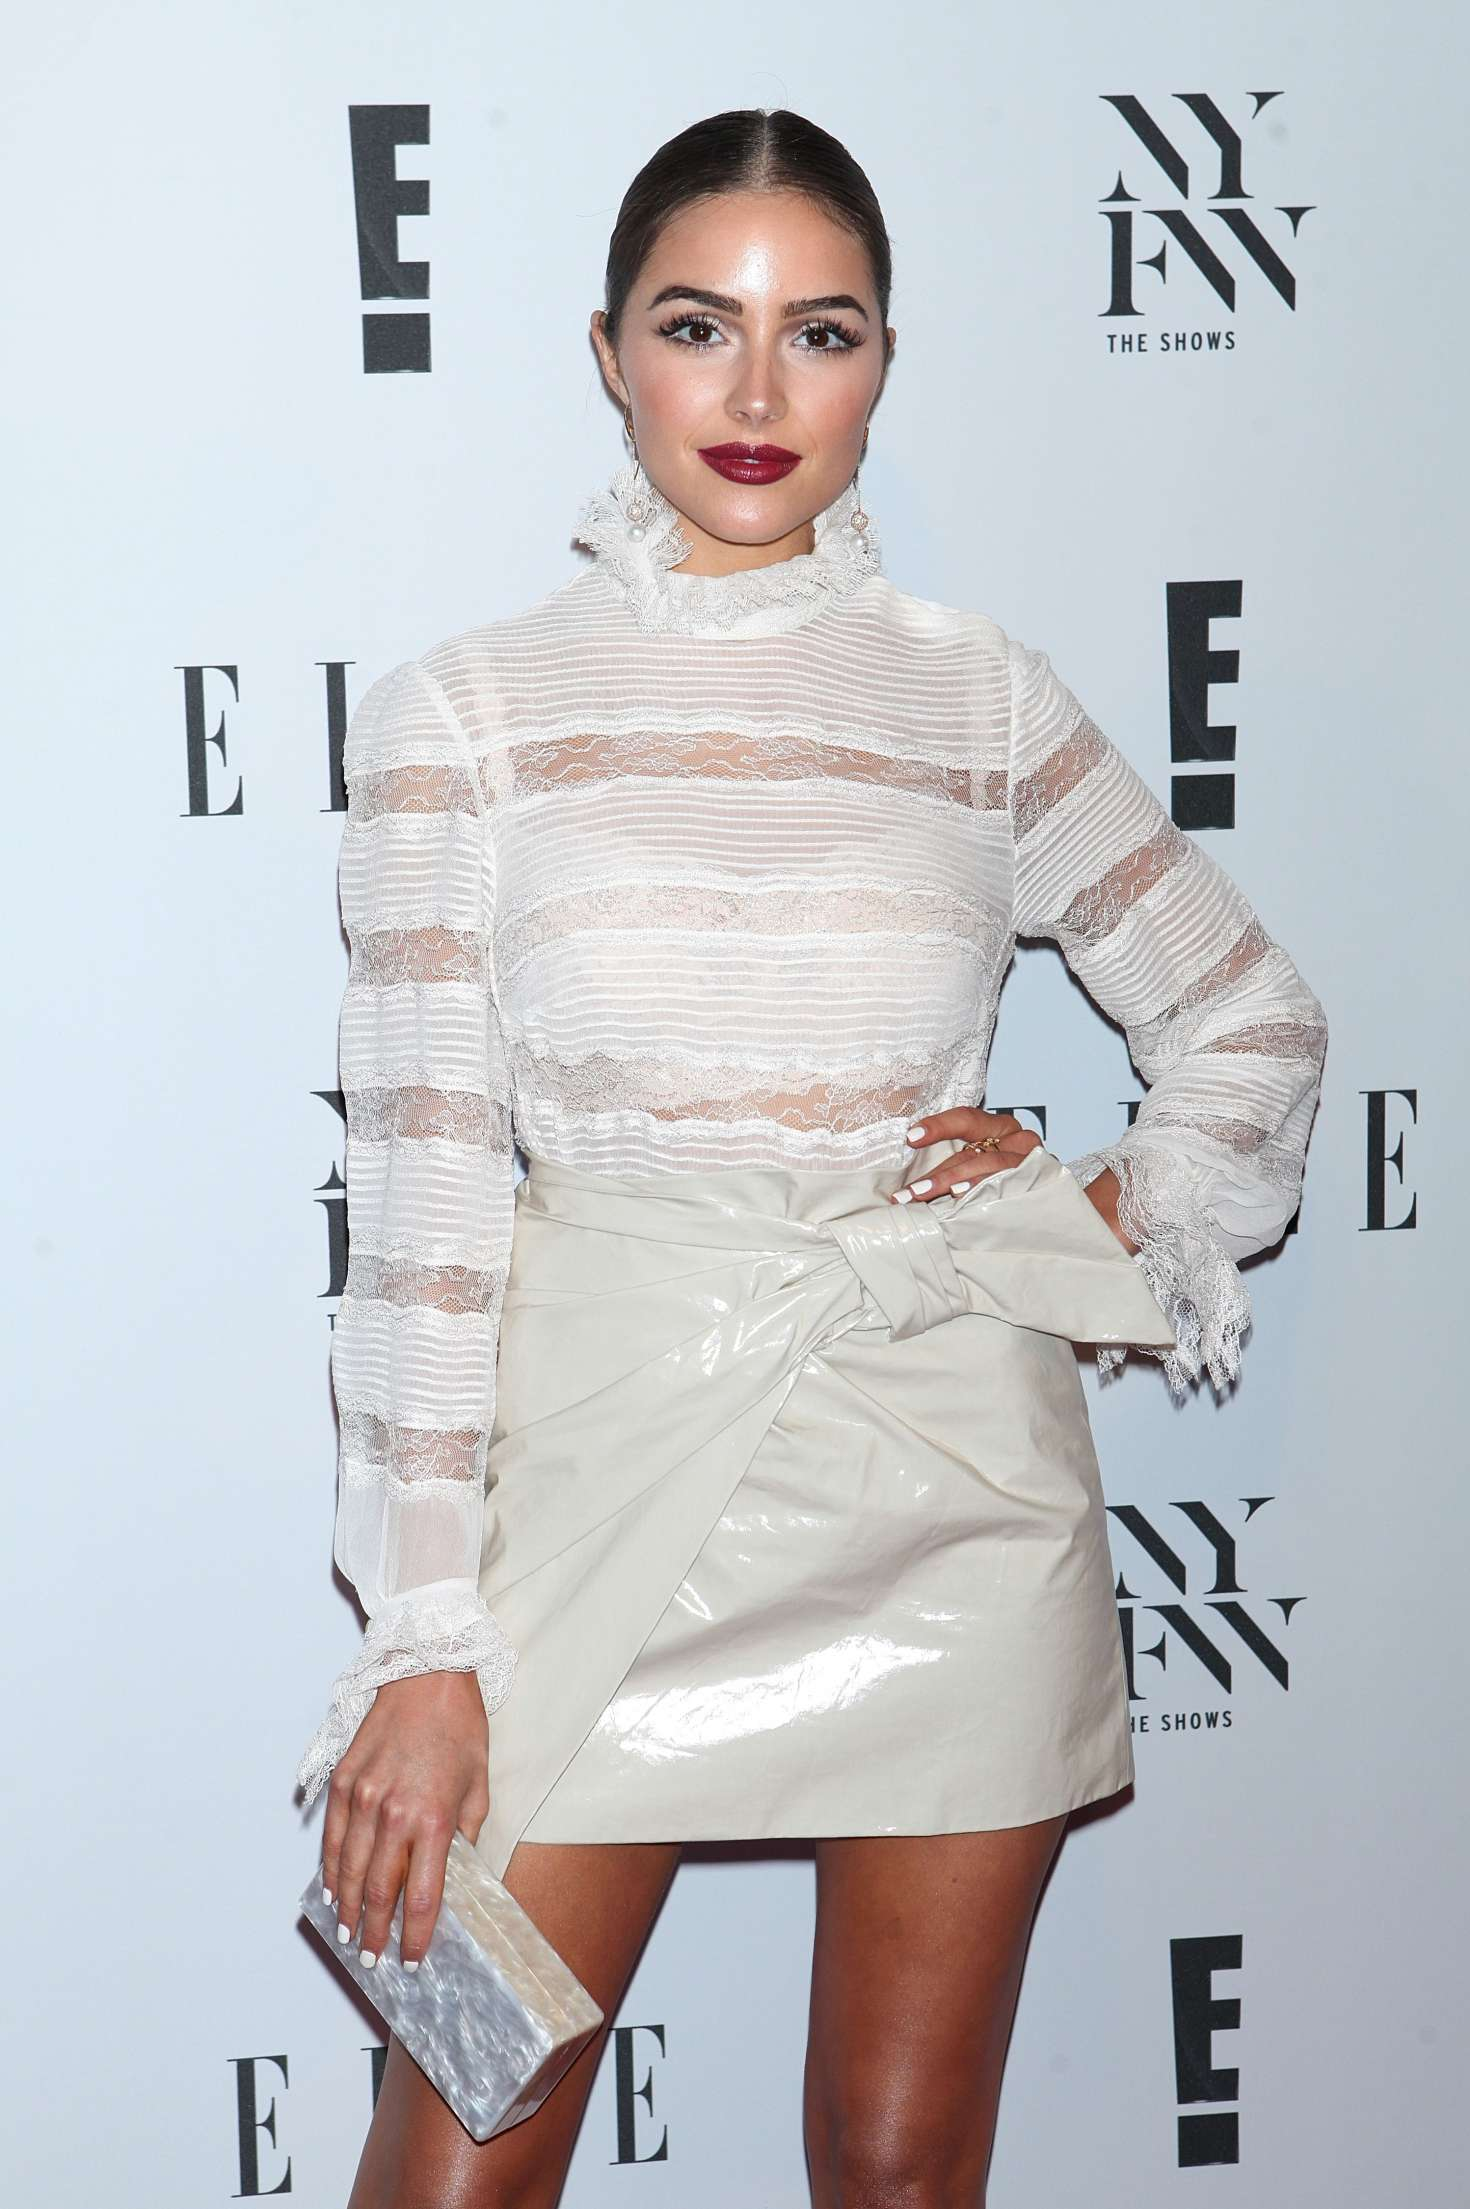 Olivia Culpo - E! New York Fashion Week Kick Off in New York City